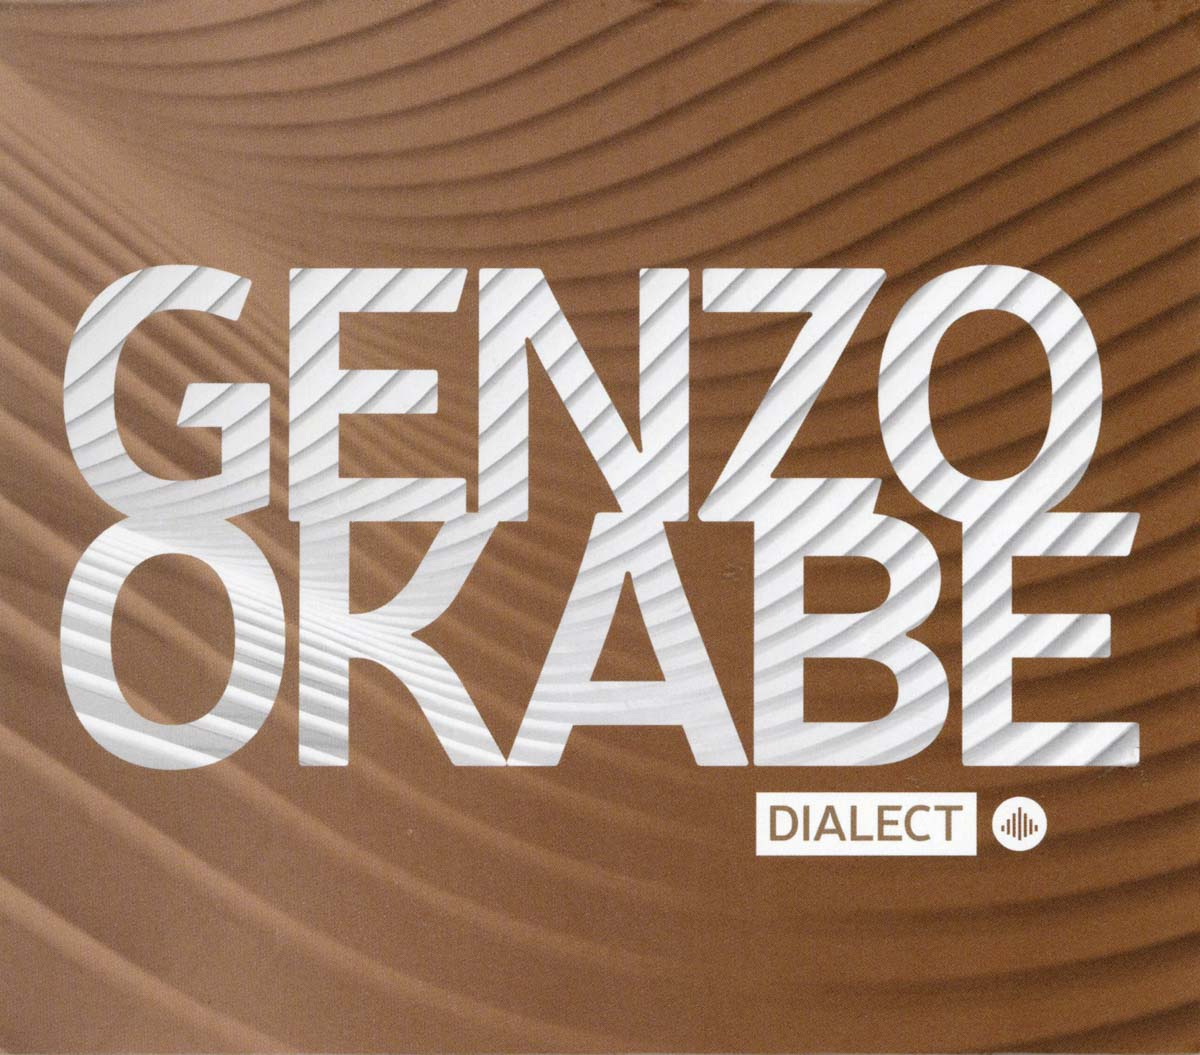 Genzo Okabe - Dialect